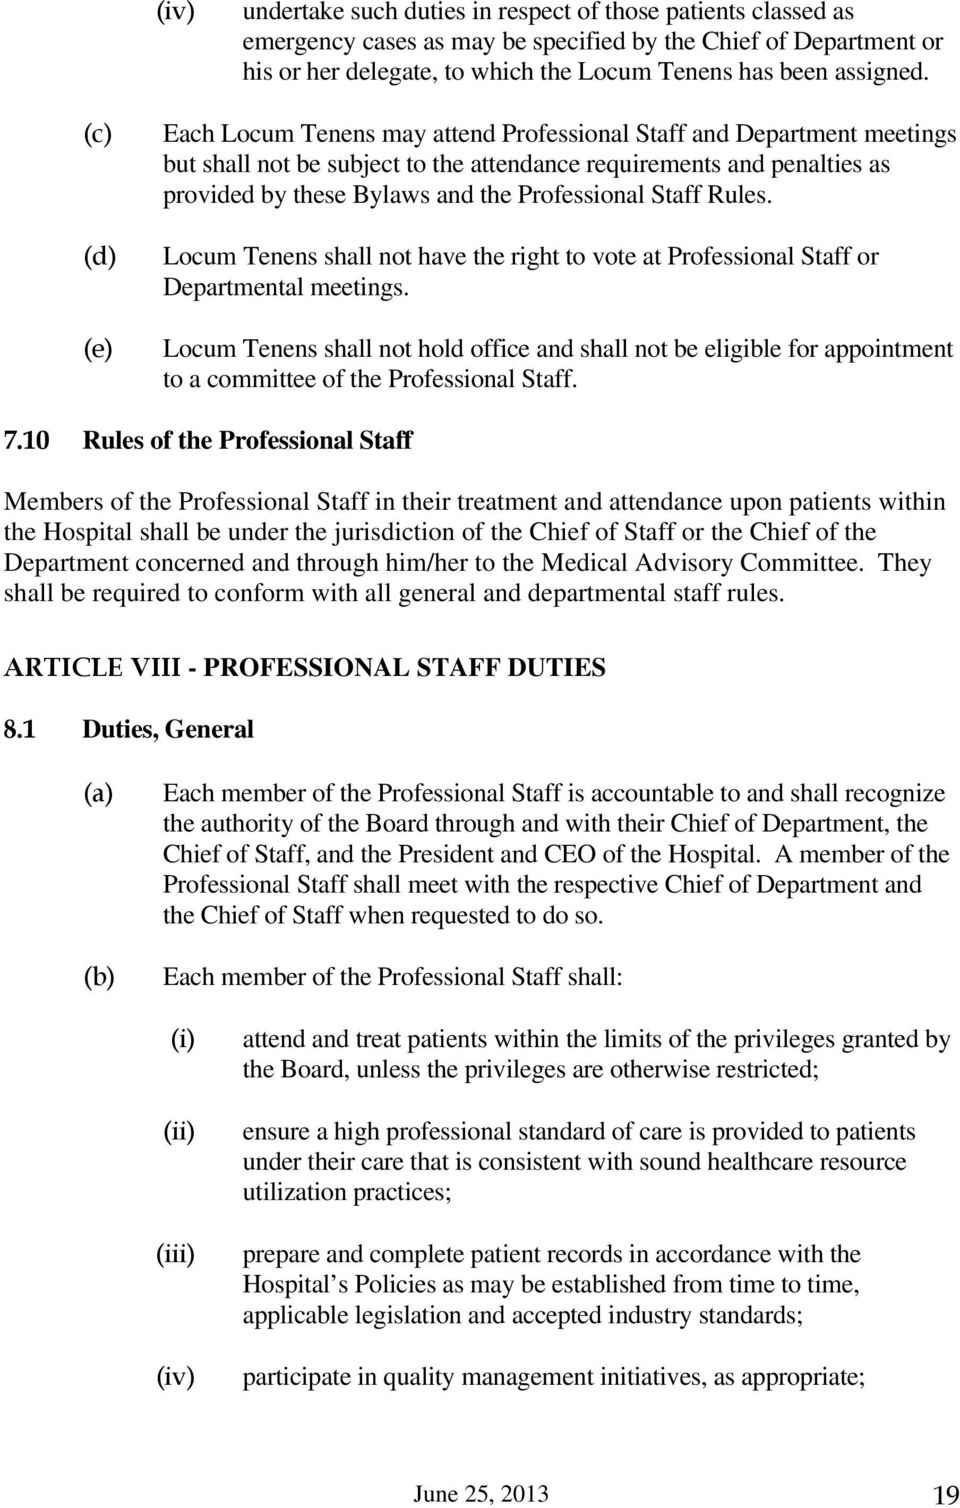 Staff Rules. Locum Tenens shall not have the right to vote at Professional Staff or Departmental meetings.